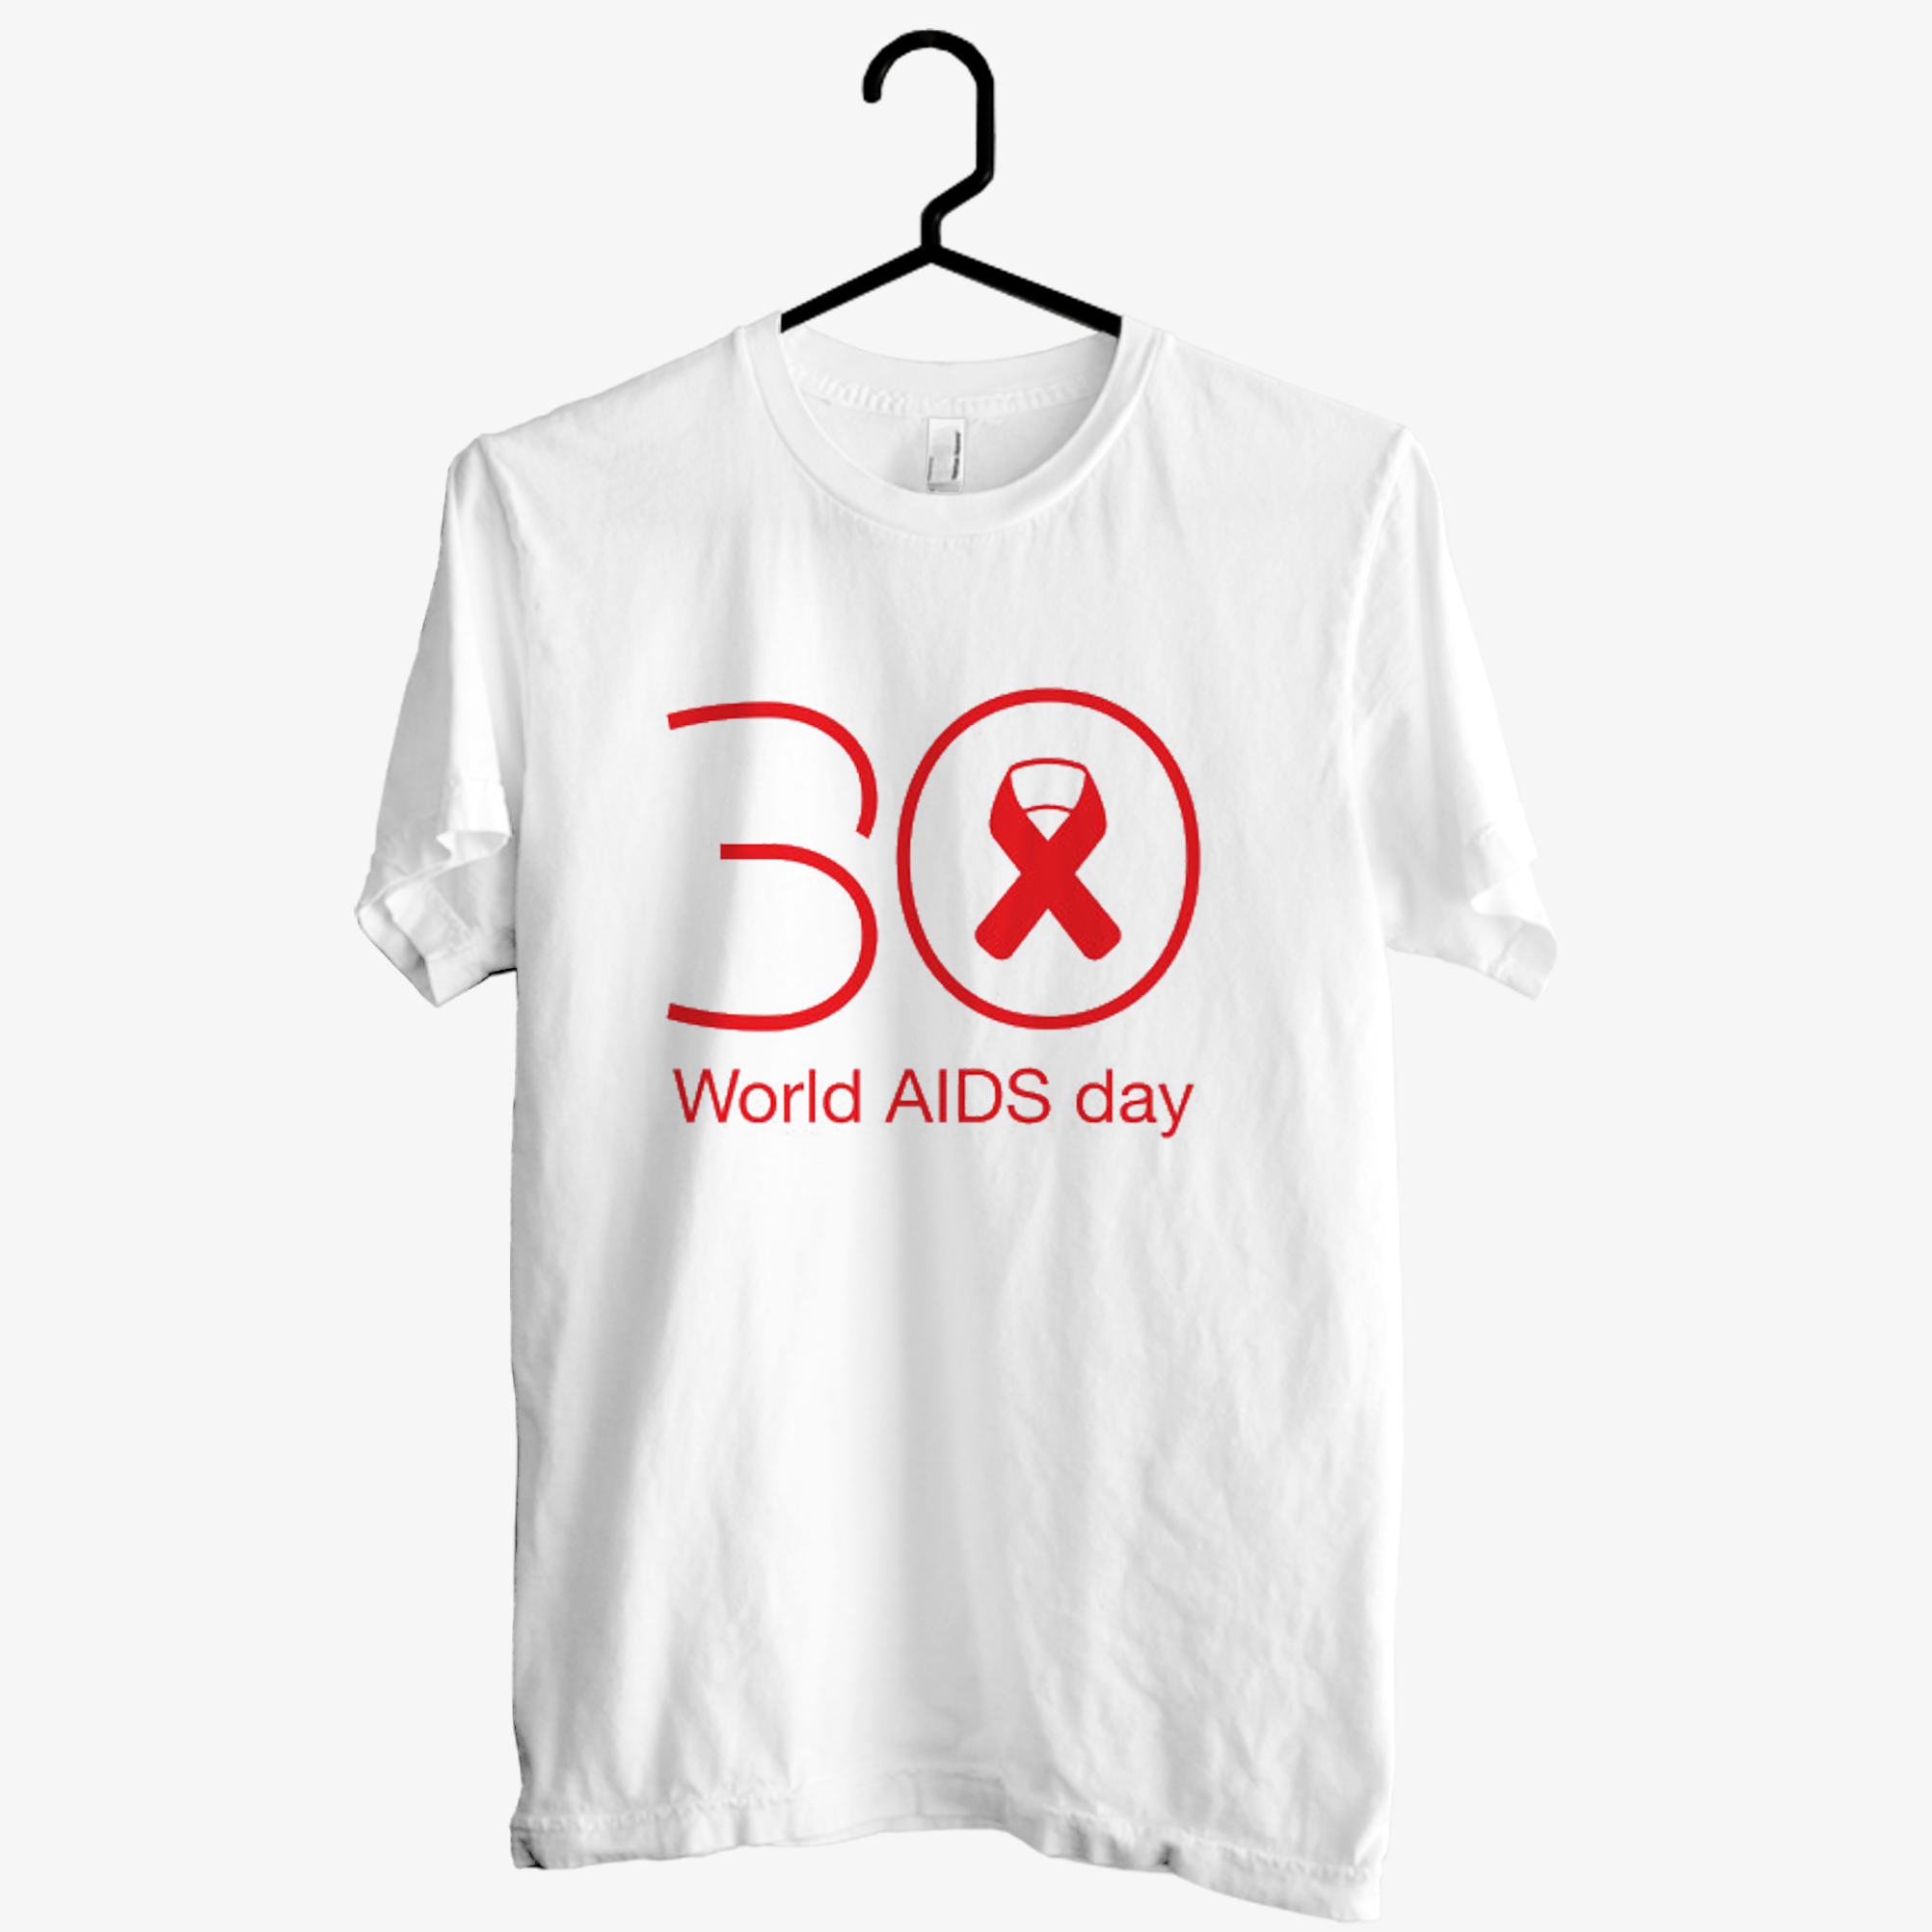 30th World AIDS day T shirt